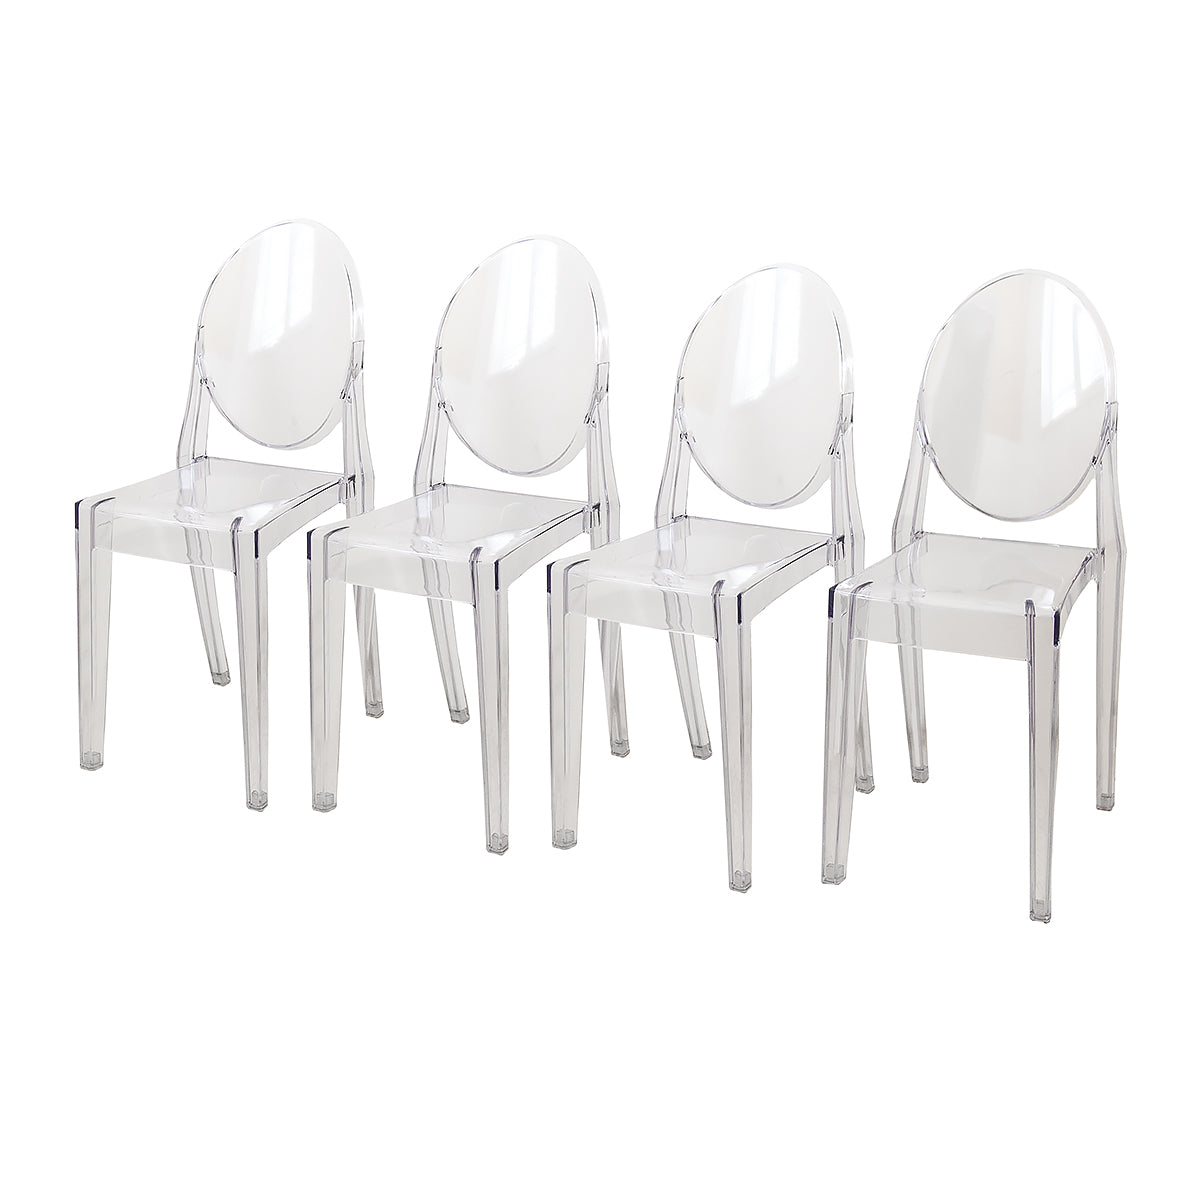 Set of Four Transparent Contemporary Modern Dining Room Chairs, Lounge Chairs